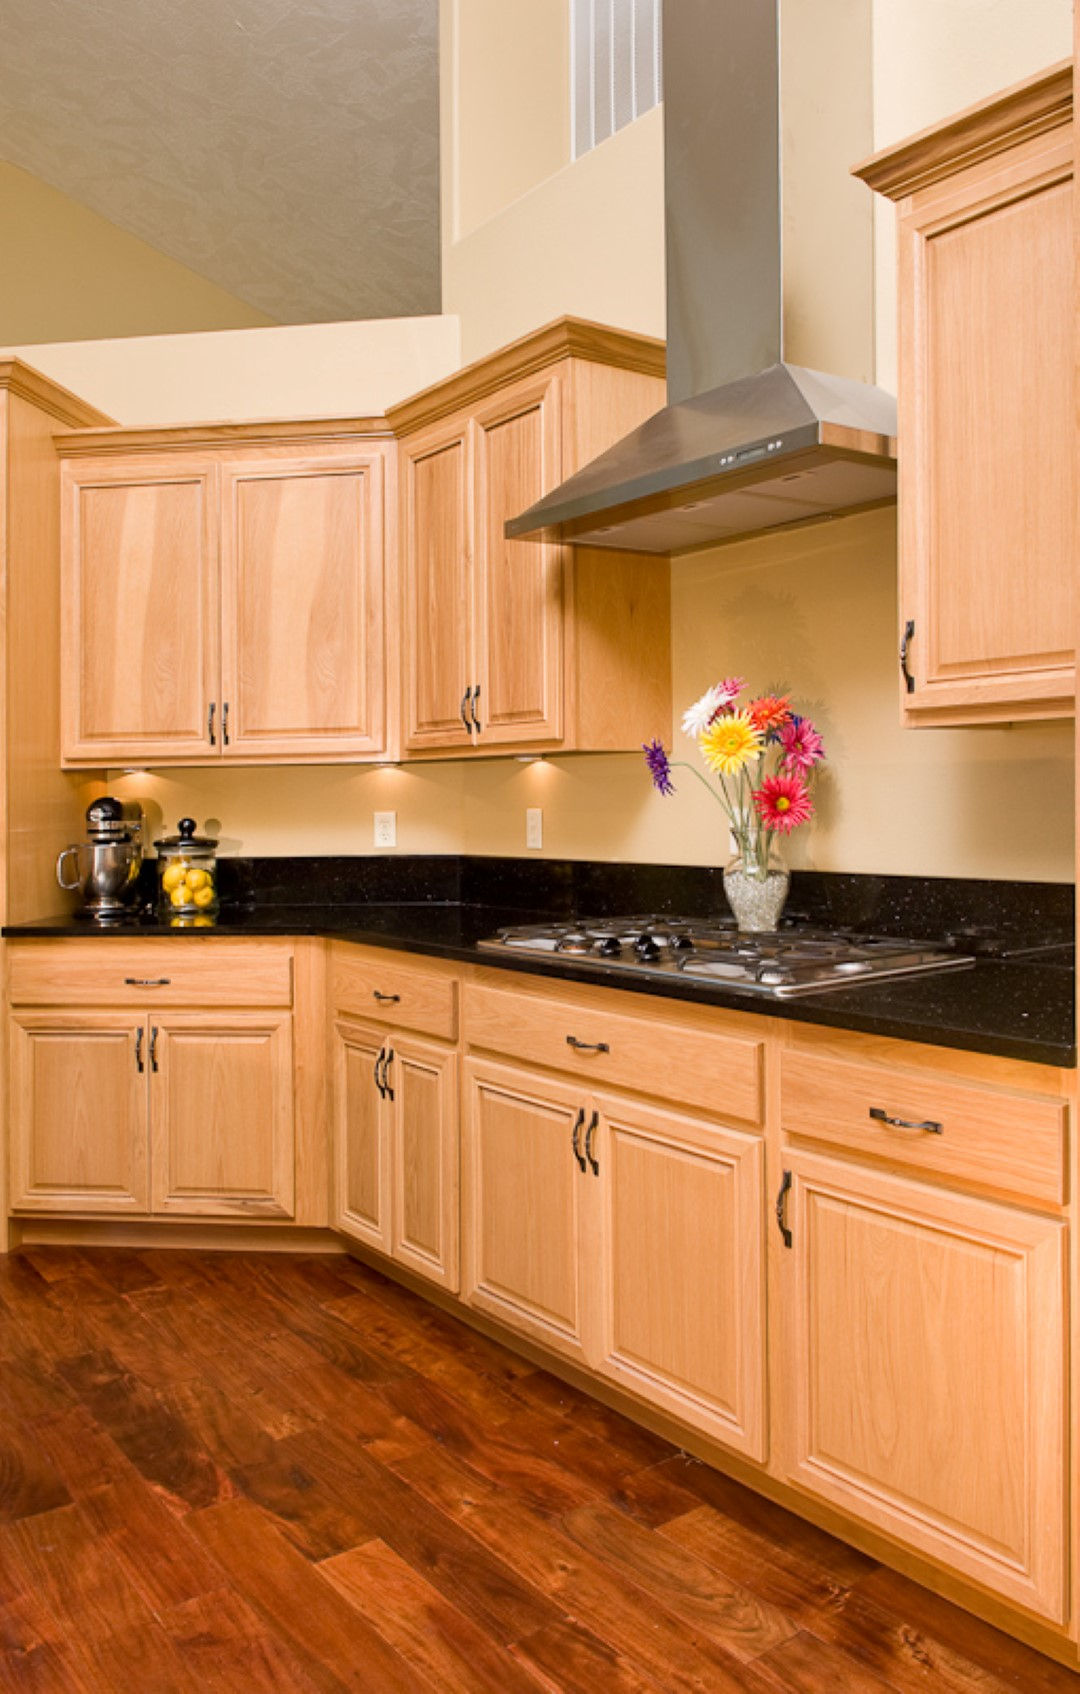 Cabinets-1015 (Large).jpg